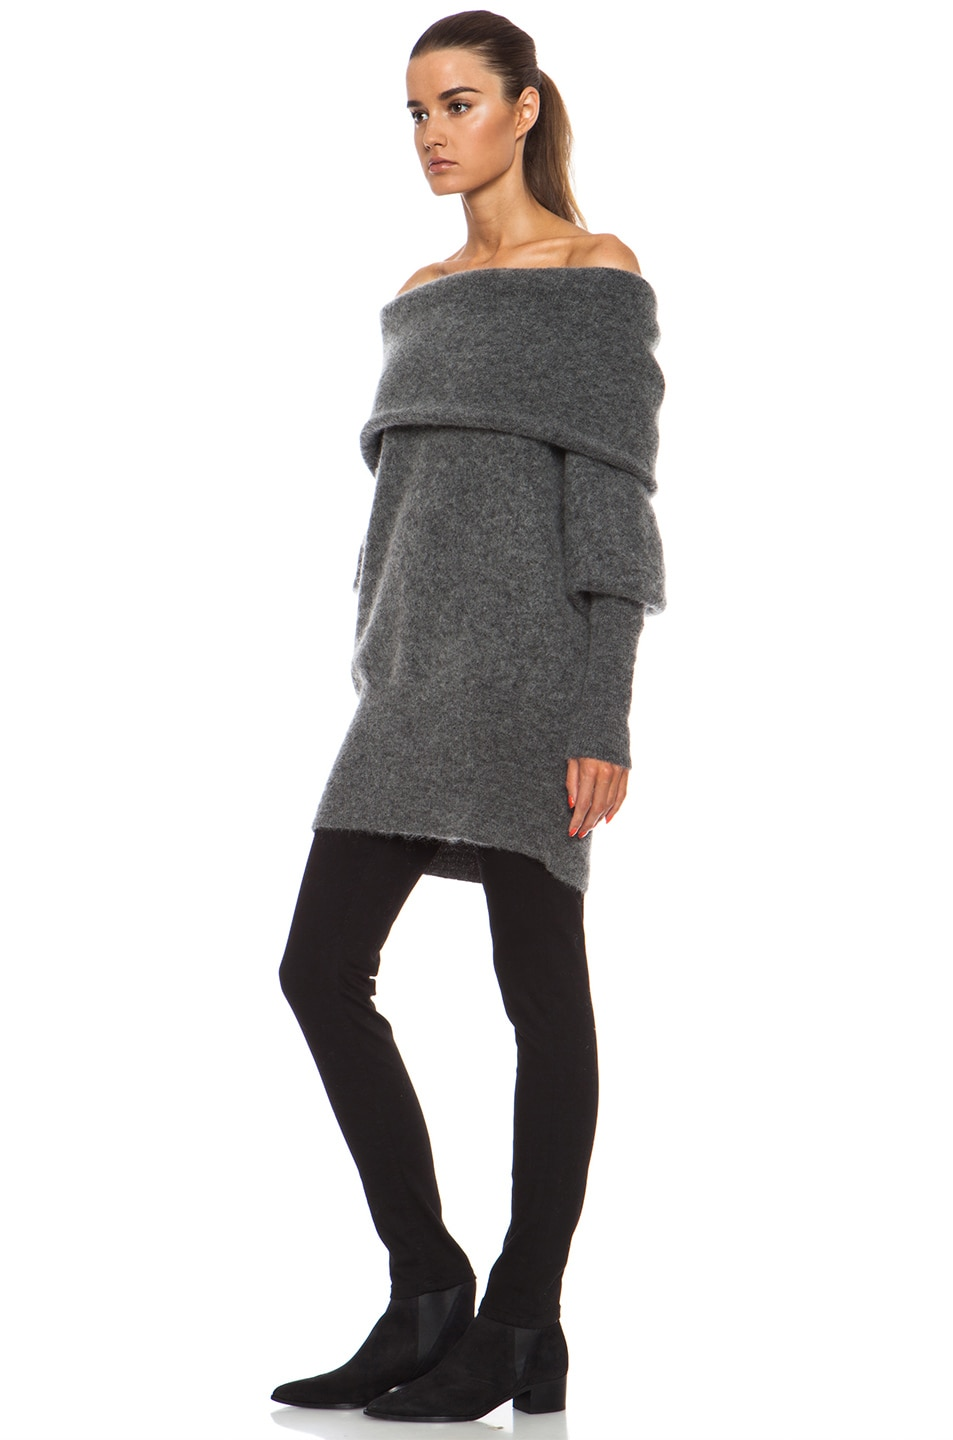 28b4b82220a9 Image 2 of Acne Studios Daze Mohair Sweater in Grey Melange